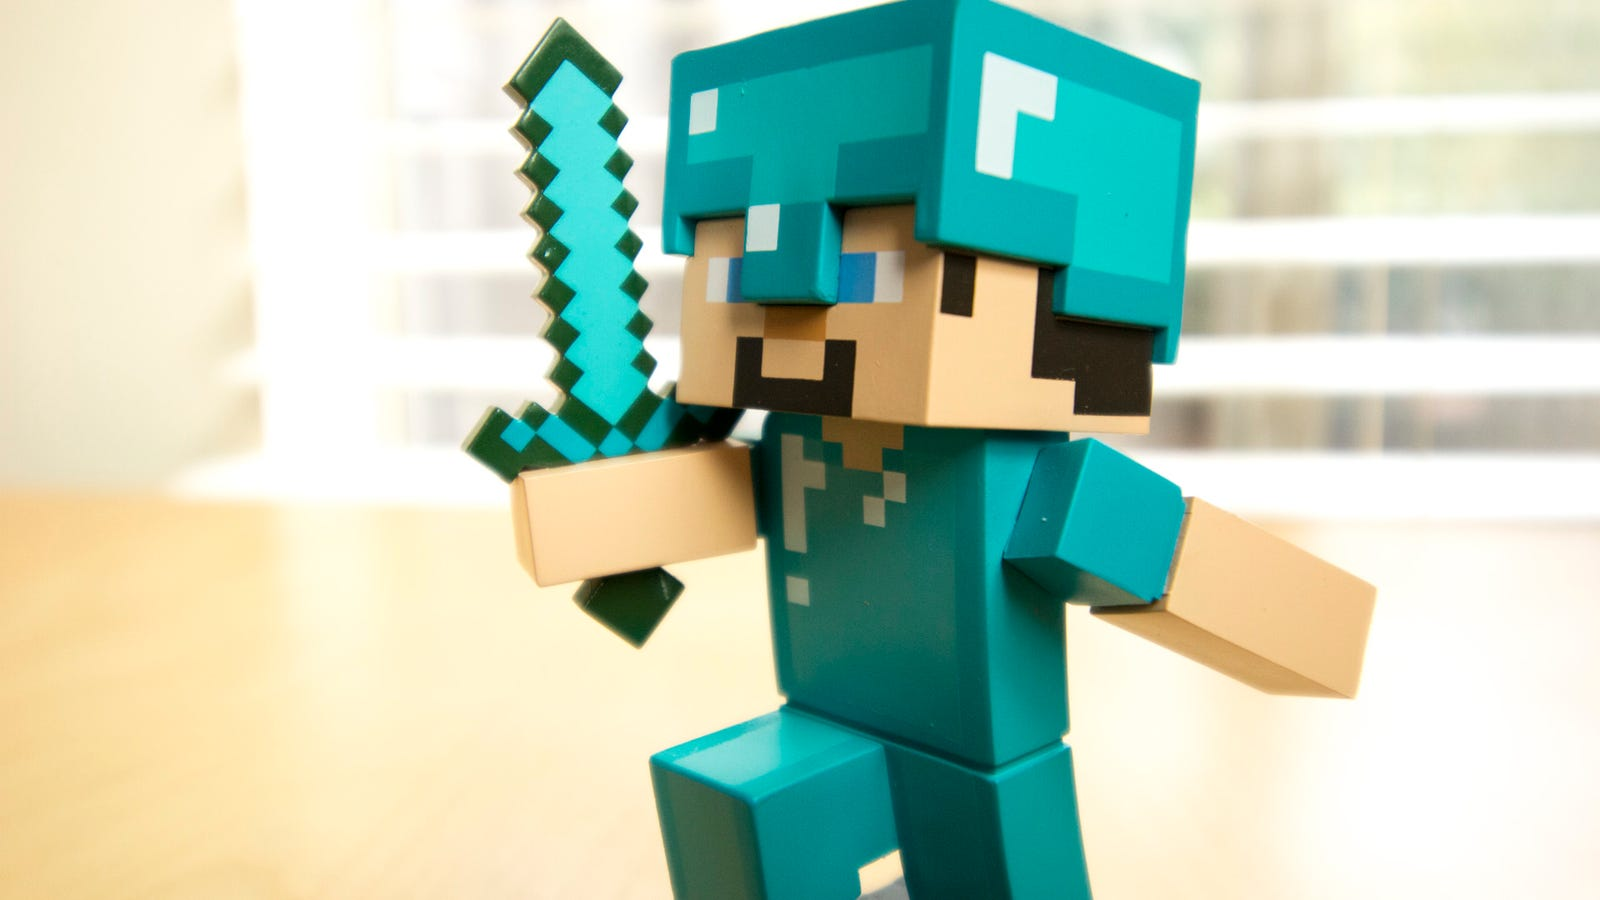 You can't go wrong with good old Diamond Steve. While staying true to texture, the Minecraft adventure figures give the characters' bodies a slight curve, adding a sense of momentum to the stationary toys. He is charging towards a thing, and that thing is probably adventure.